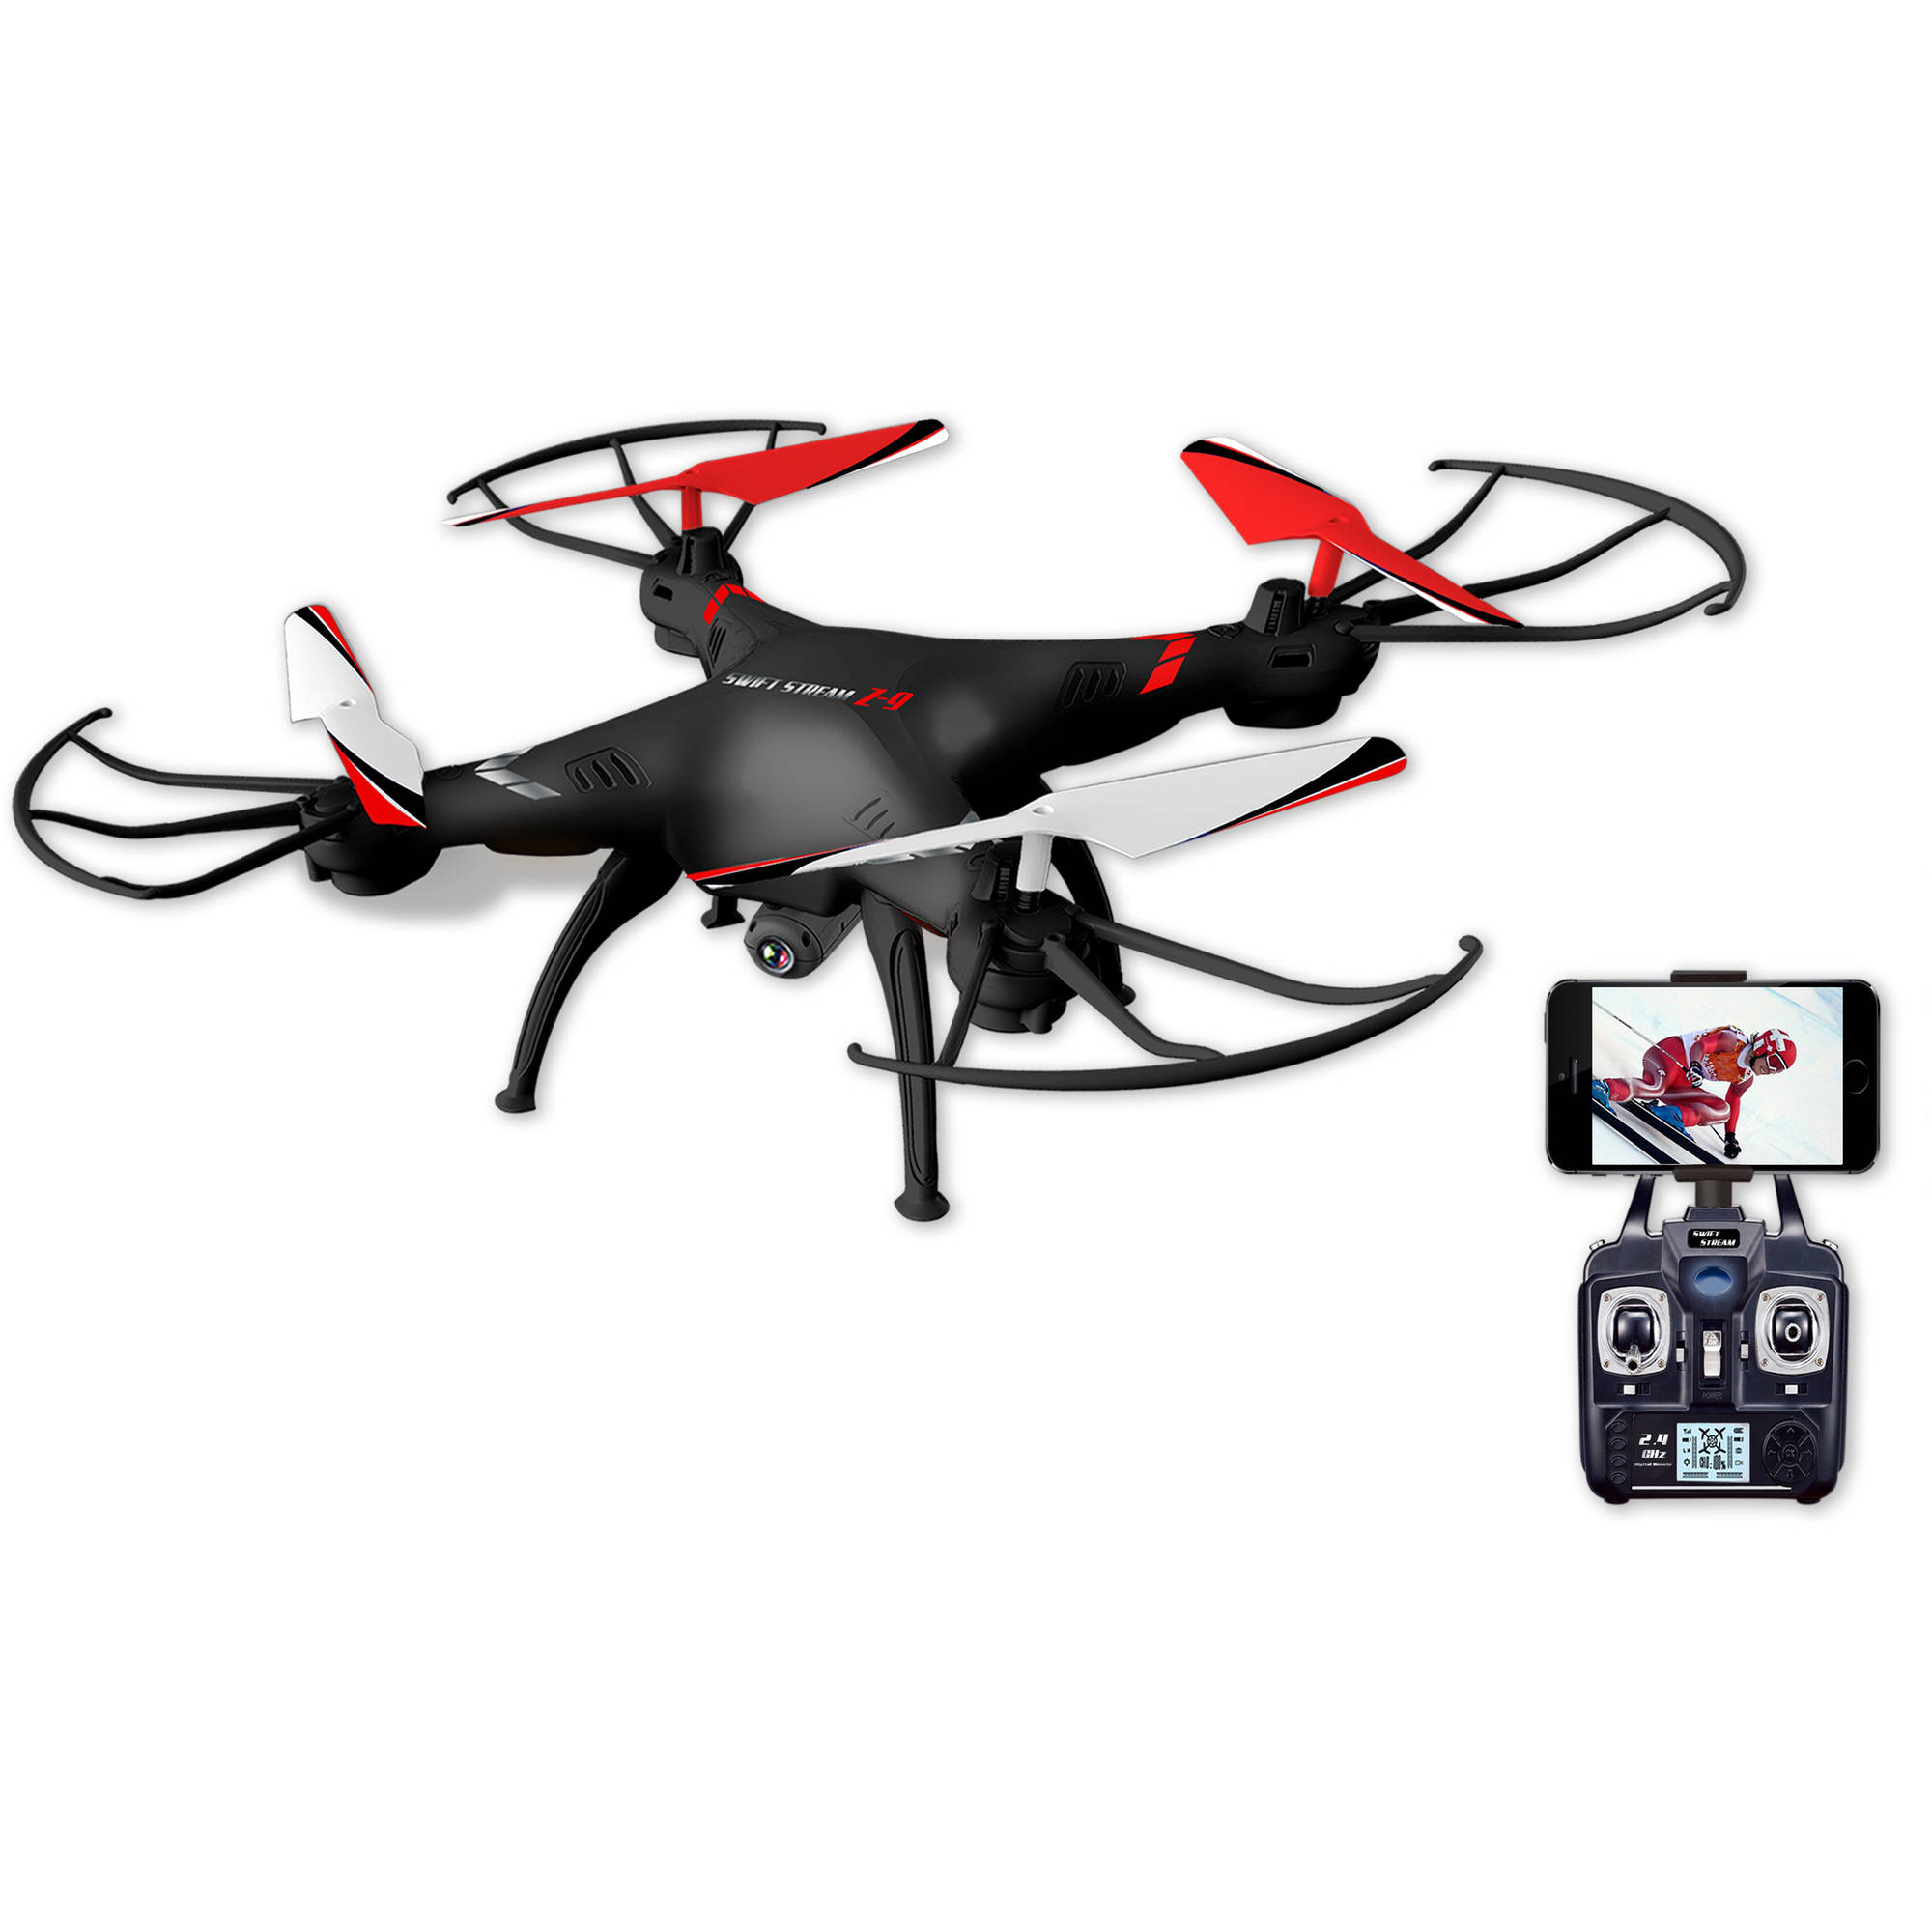 Swift Stream RC Z-9 12.4 inch Wi-Fi Camera Drone